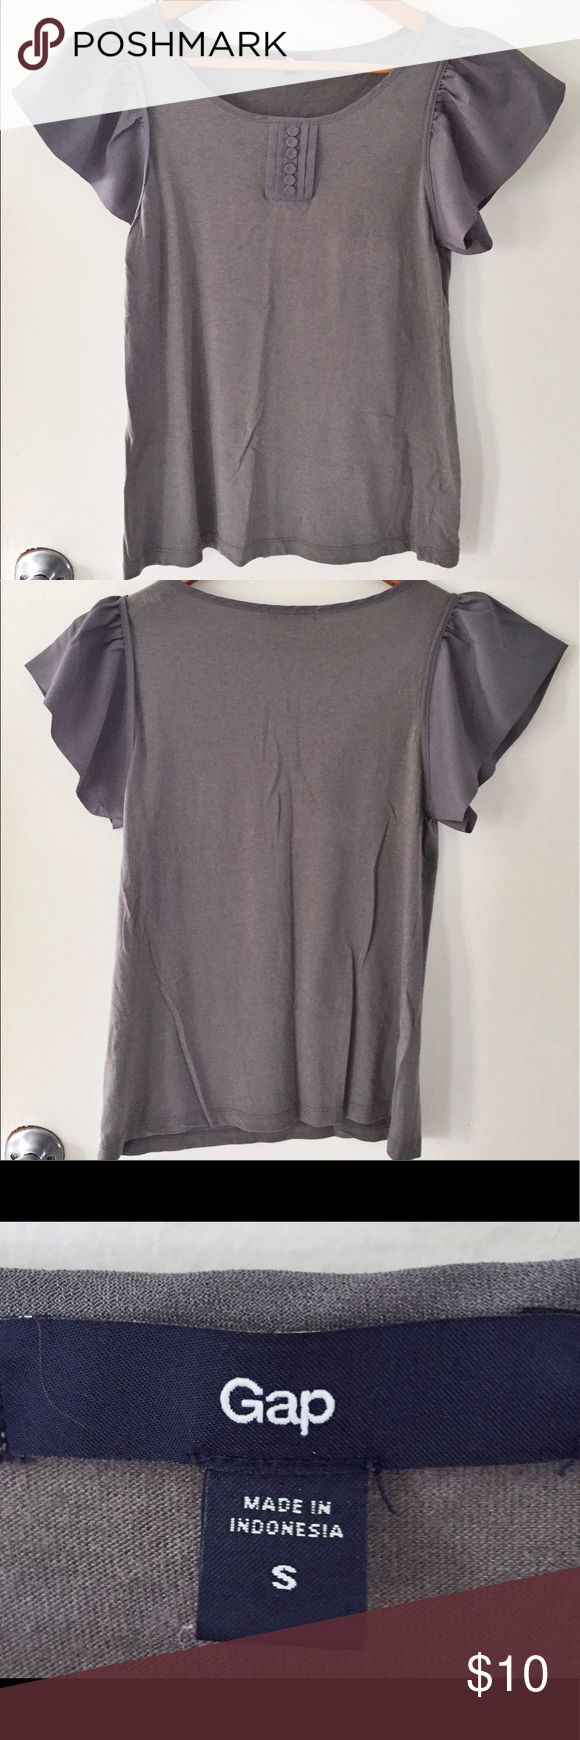 GAP women's ruffle sleeve blouse size small GAP women's grey ruffle shirt sleeve blouse. Size small. Colour grey. Perfect for work or a night out. GAP Tops Blouses